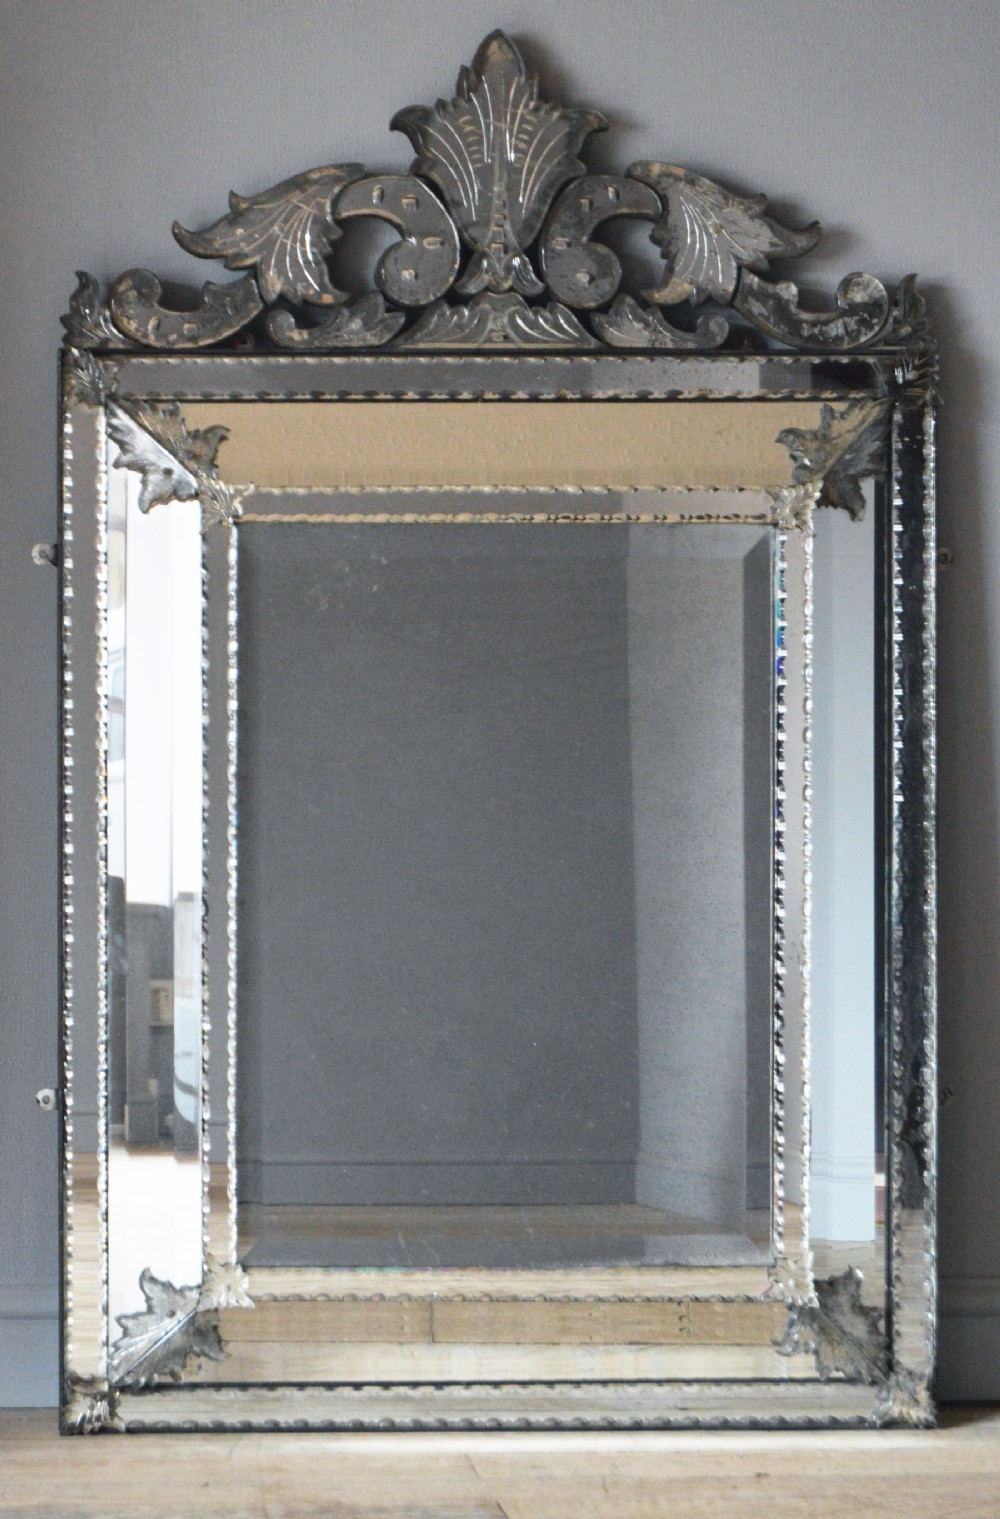 Antique Venetian Glass Mirror Within Venetian Glass Mirrors Antique (Image 5 of 15)